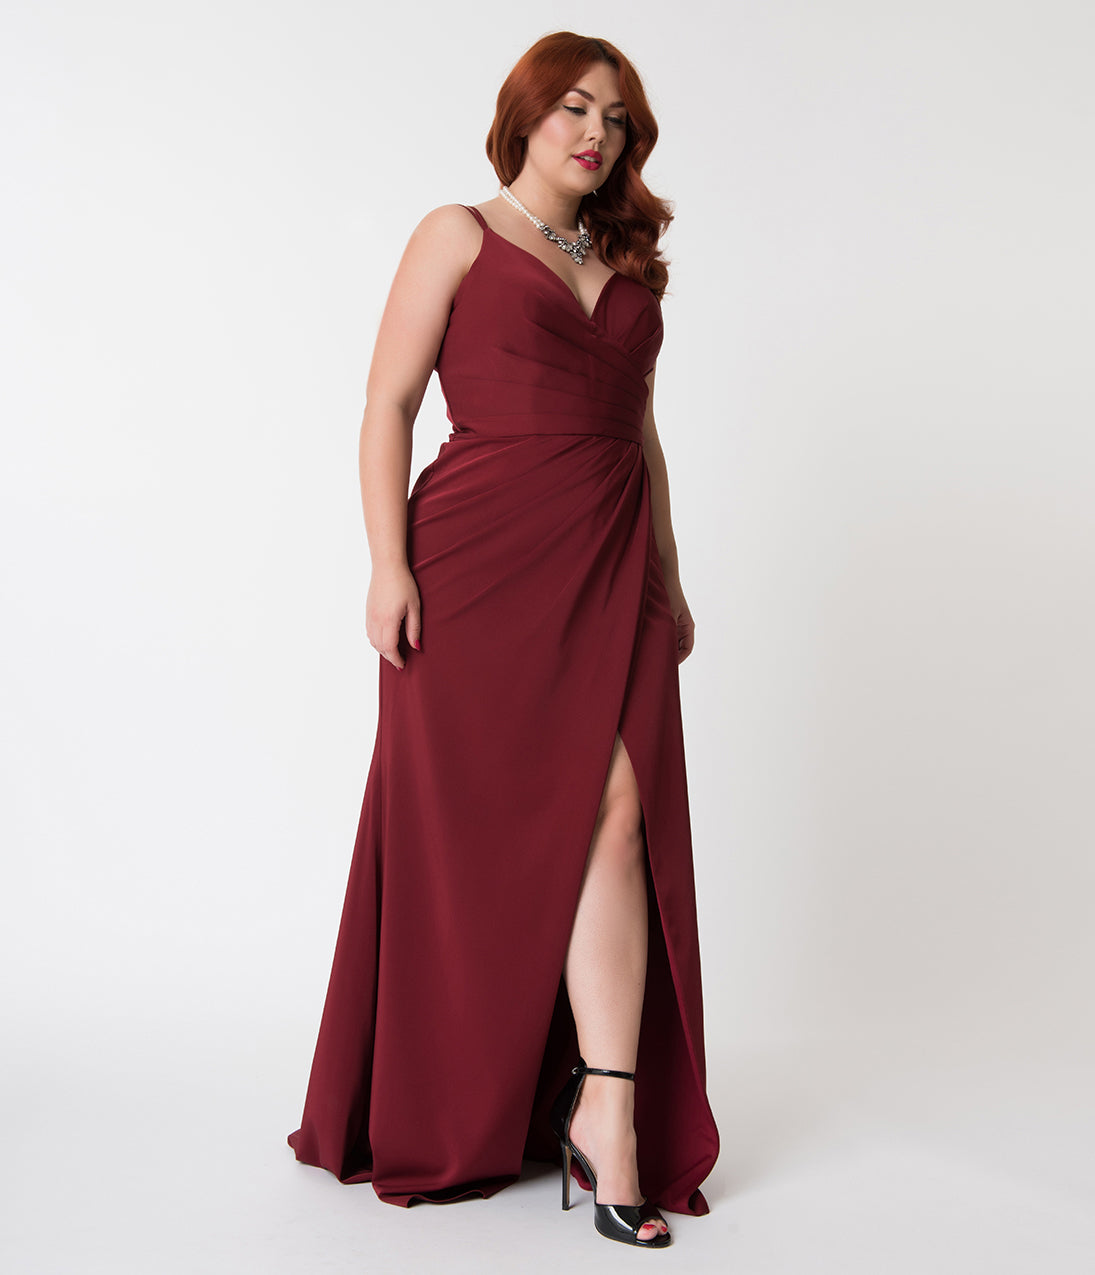 Vintage Evening Dresses and Formal Evening Gowns Plus Size Burgundy Red Sexy Pleated Long Dress $118.00 AT vintagedancer.com